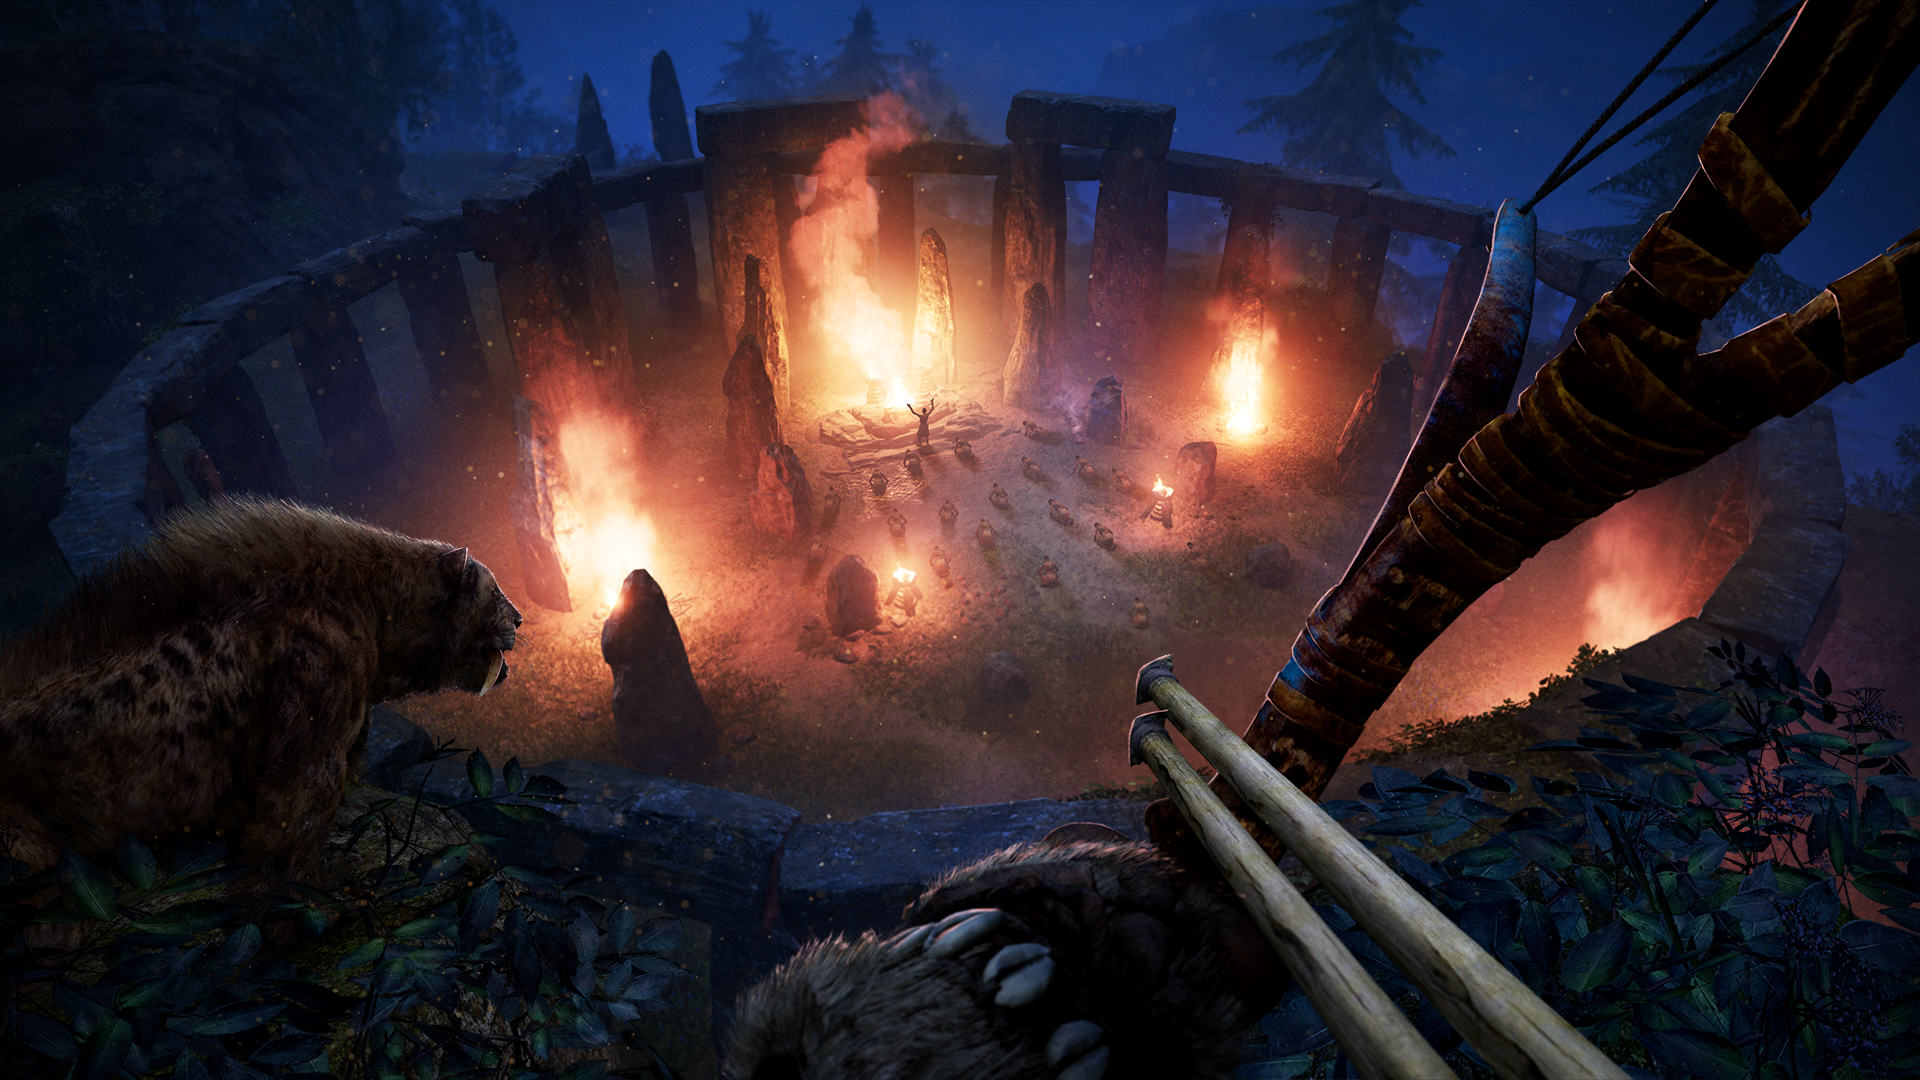 FCP 06 Ritual Attack Screenshots PREVIEW PR 160126 6pm CET 1453716683 An Exclusive Look At Far Cry Primal Ahead Of Release Day